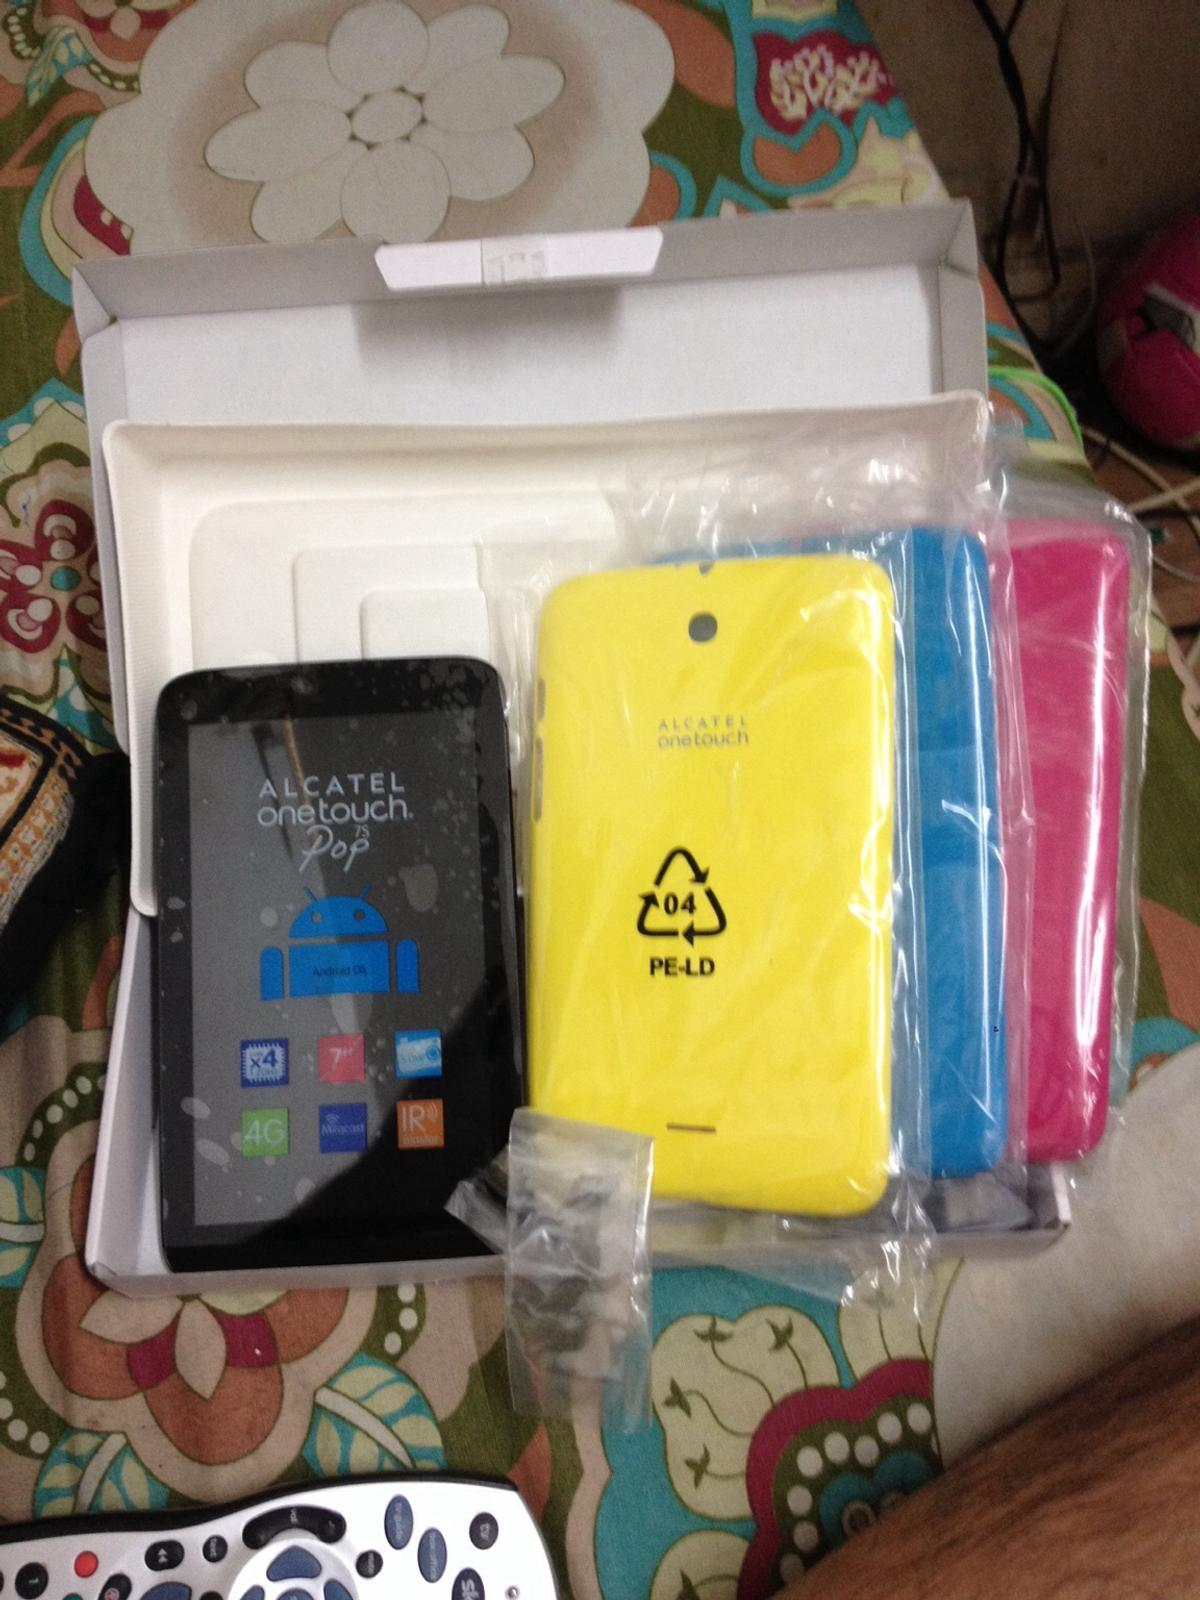 Alcatel one touch pop7s tab & cellular